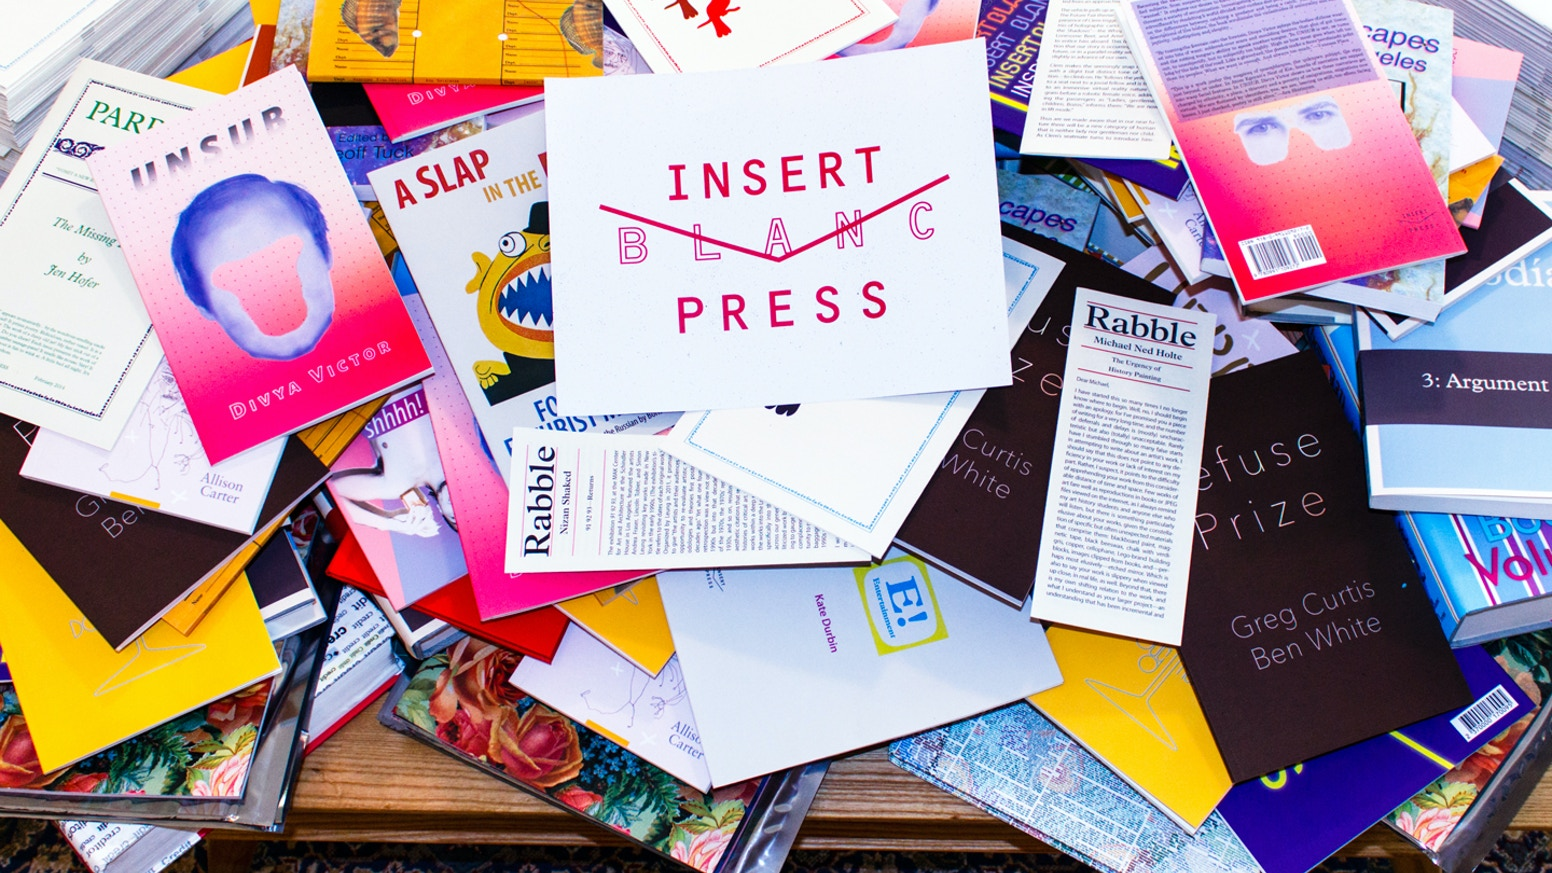 Insert Blanc Press produces Innovative Art & Literature in L.A. & Dynamic Conversations among Emerging Artists & Artistic Disciplines.